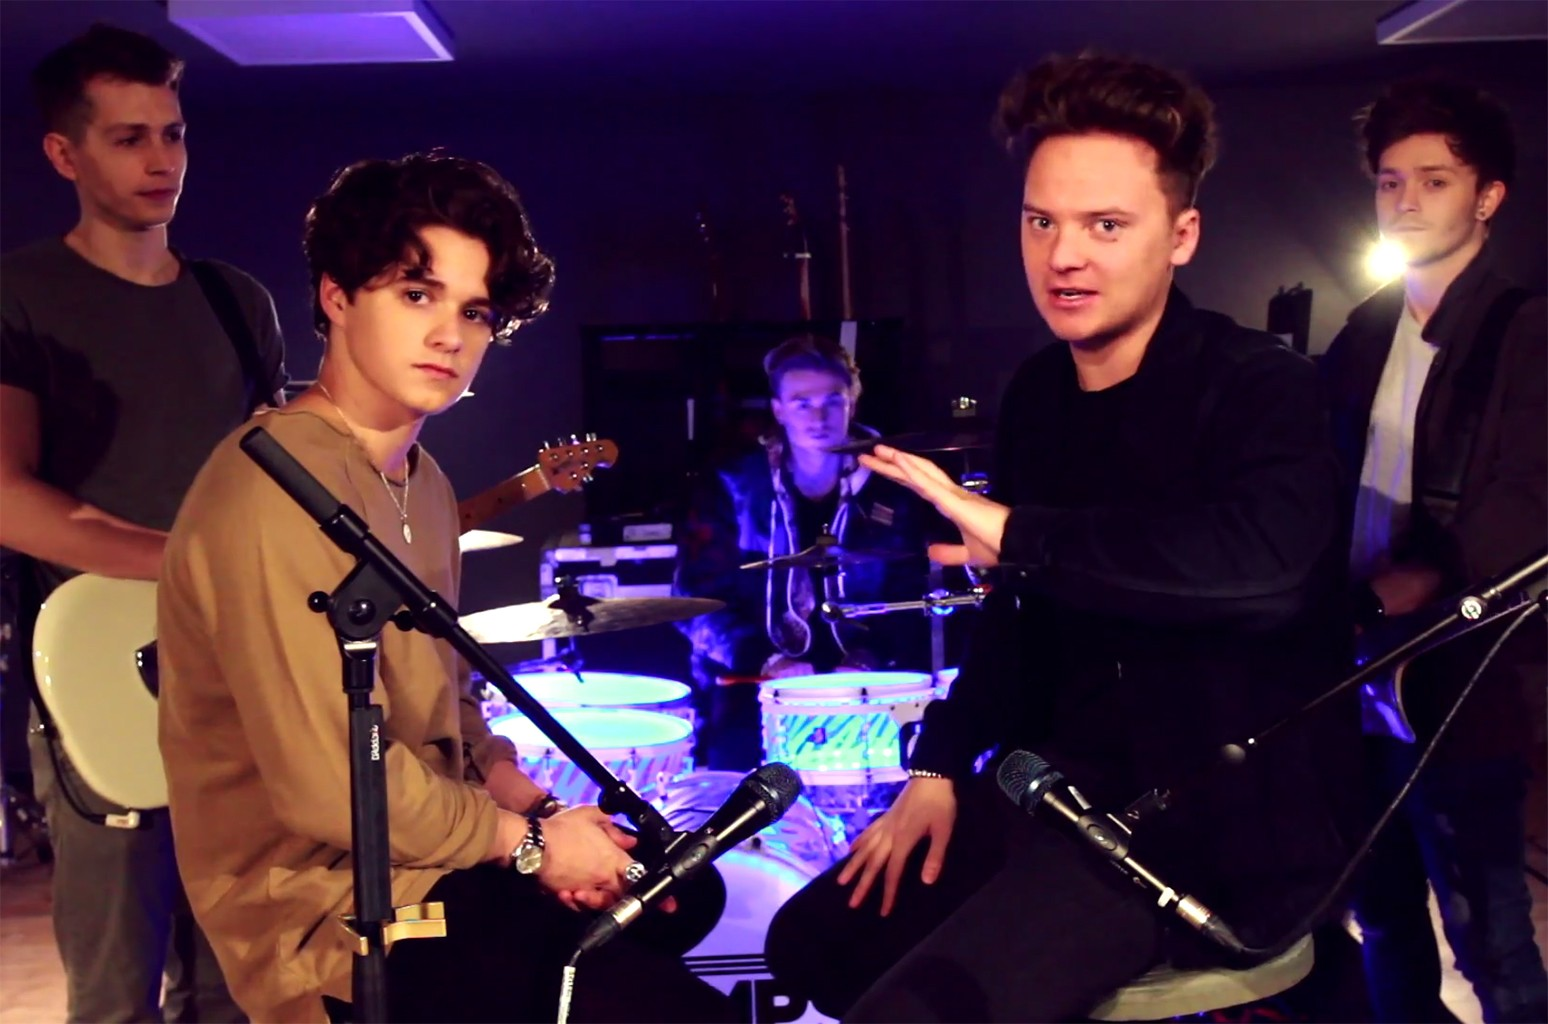 Conor Maynard and The Vamps